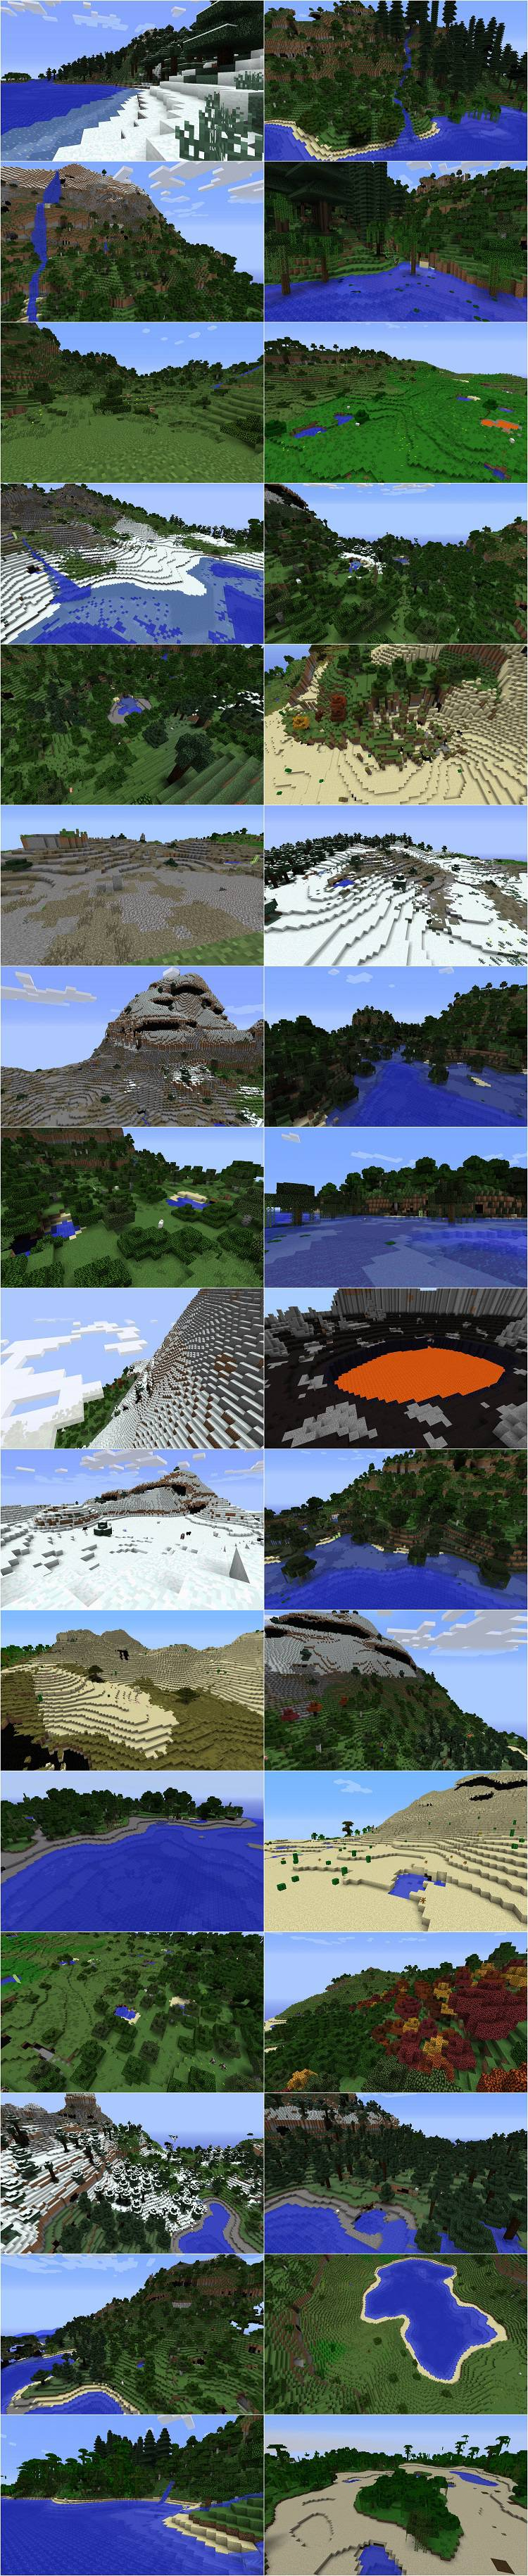 1490783890_206_alternate-terrain-generation-mod-1-11-21-10-2-for-minecraft Alternate Terrain Generation Mod 1.11.2/1.10.2 for Minecraft